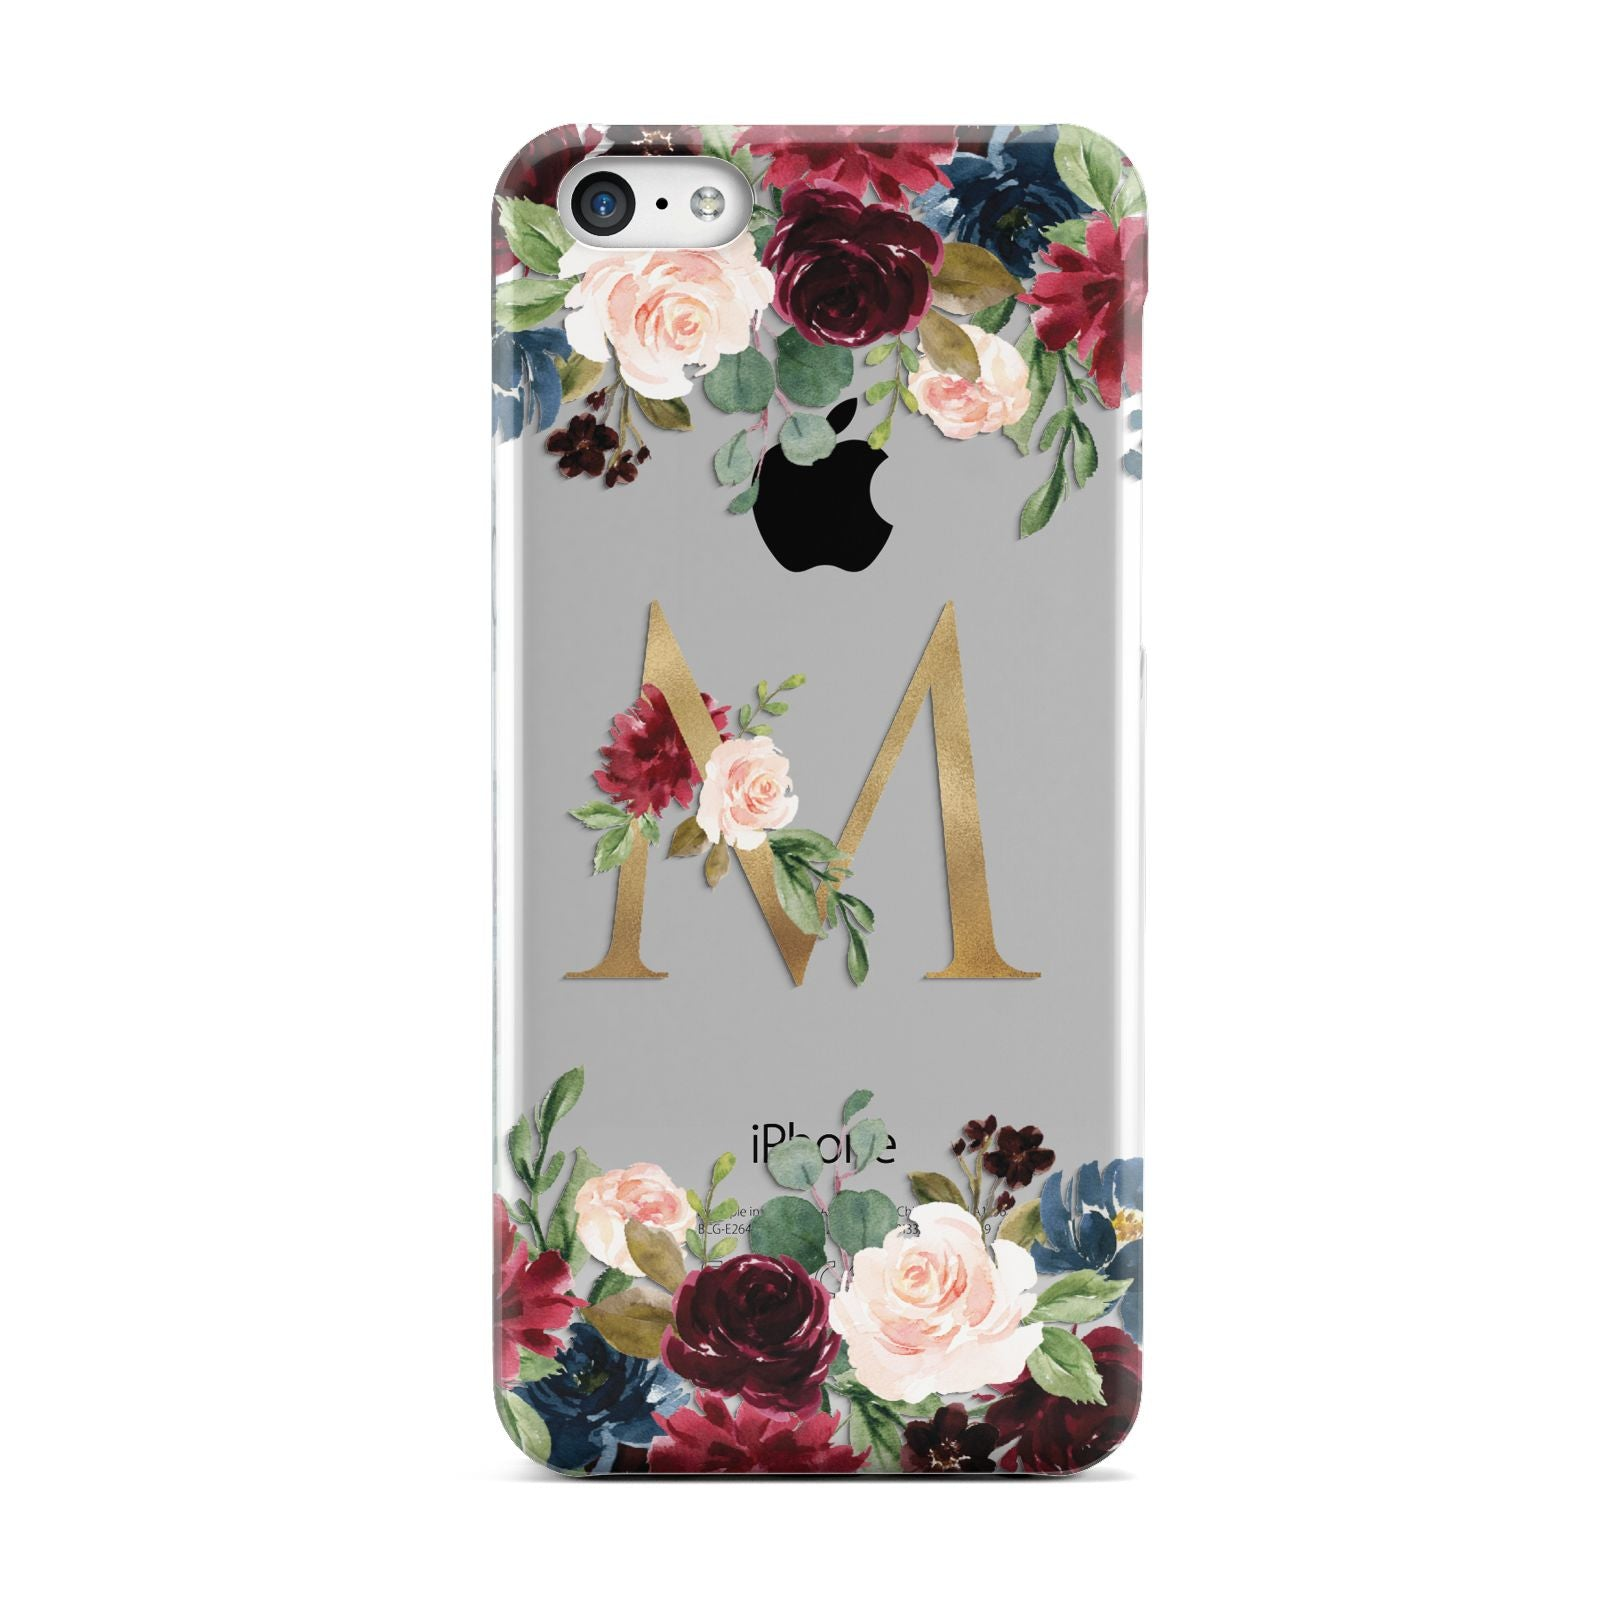 Personalised Clear Monogram Floral Apple iPhone 5c Case